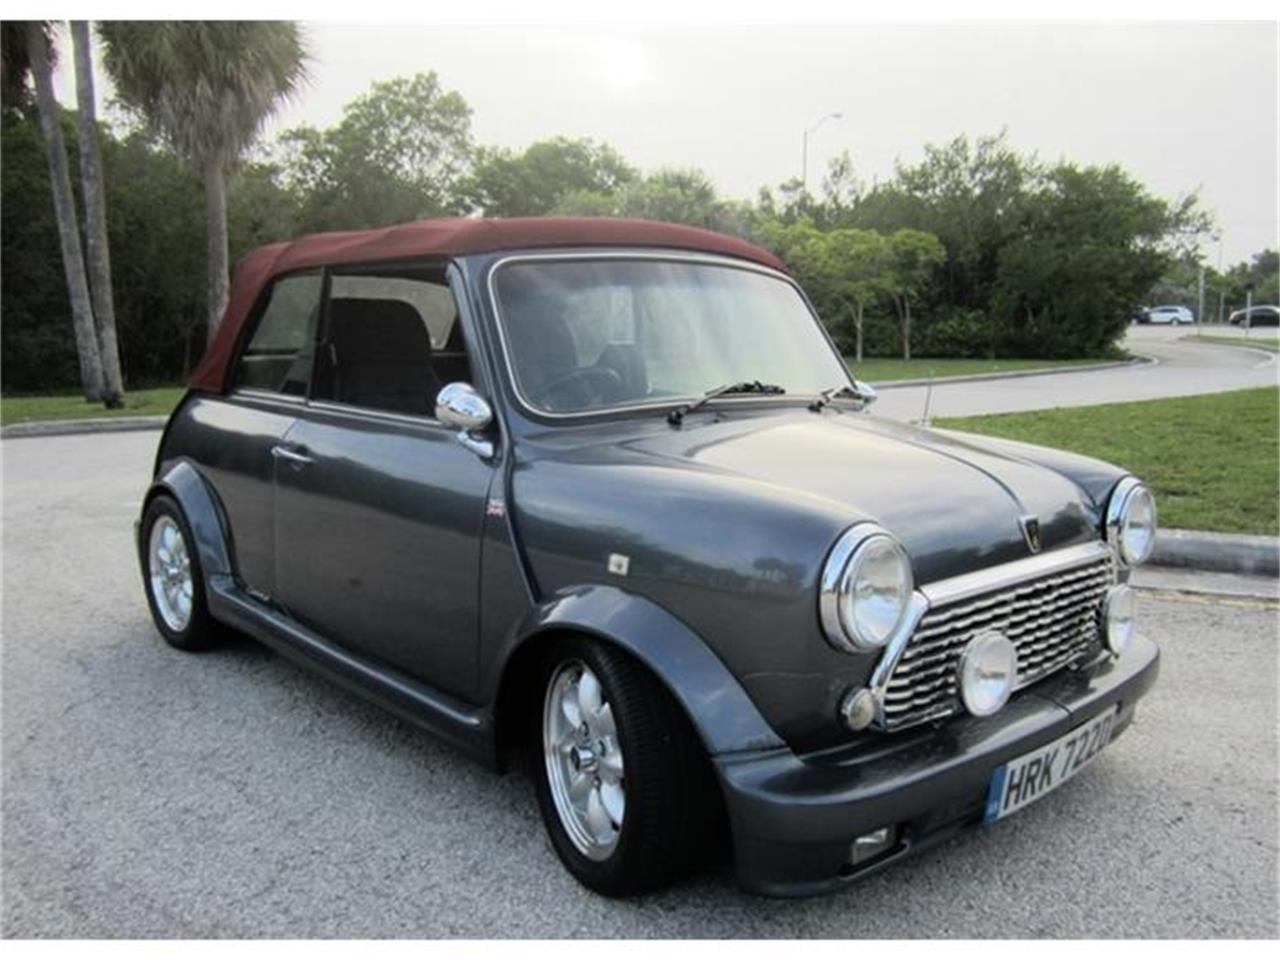 Large Picture of '83 Austin Mini Cooper located in San Antonio Texas - $29,480.00 - GJGP